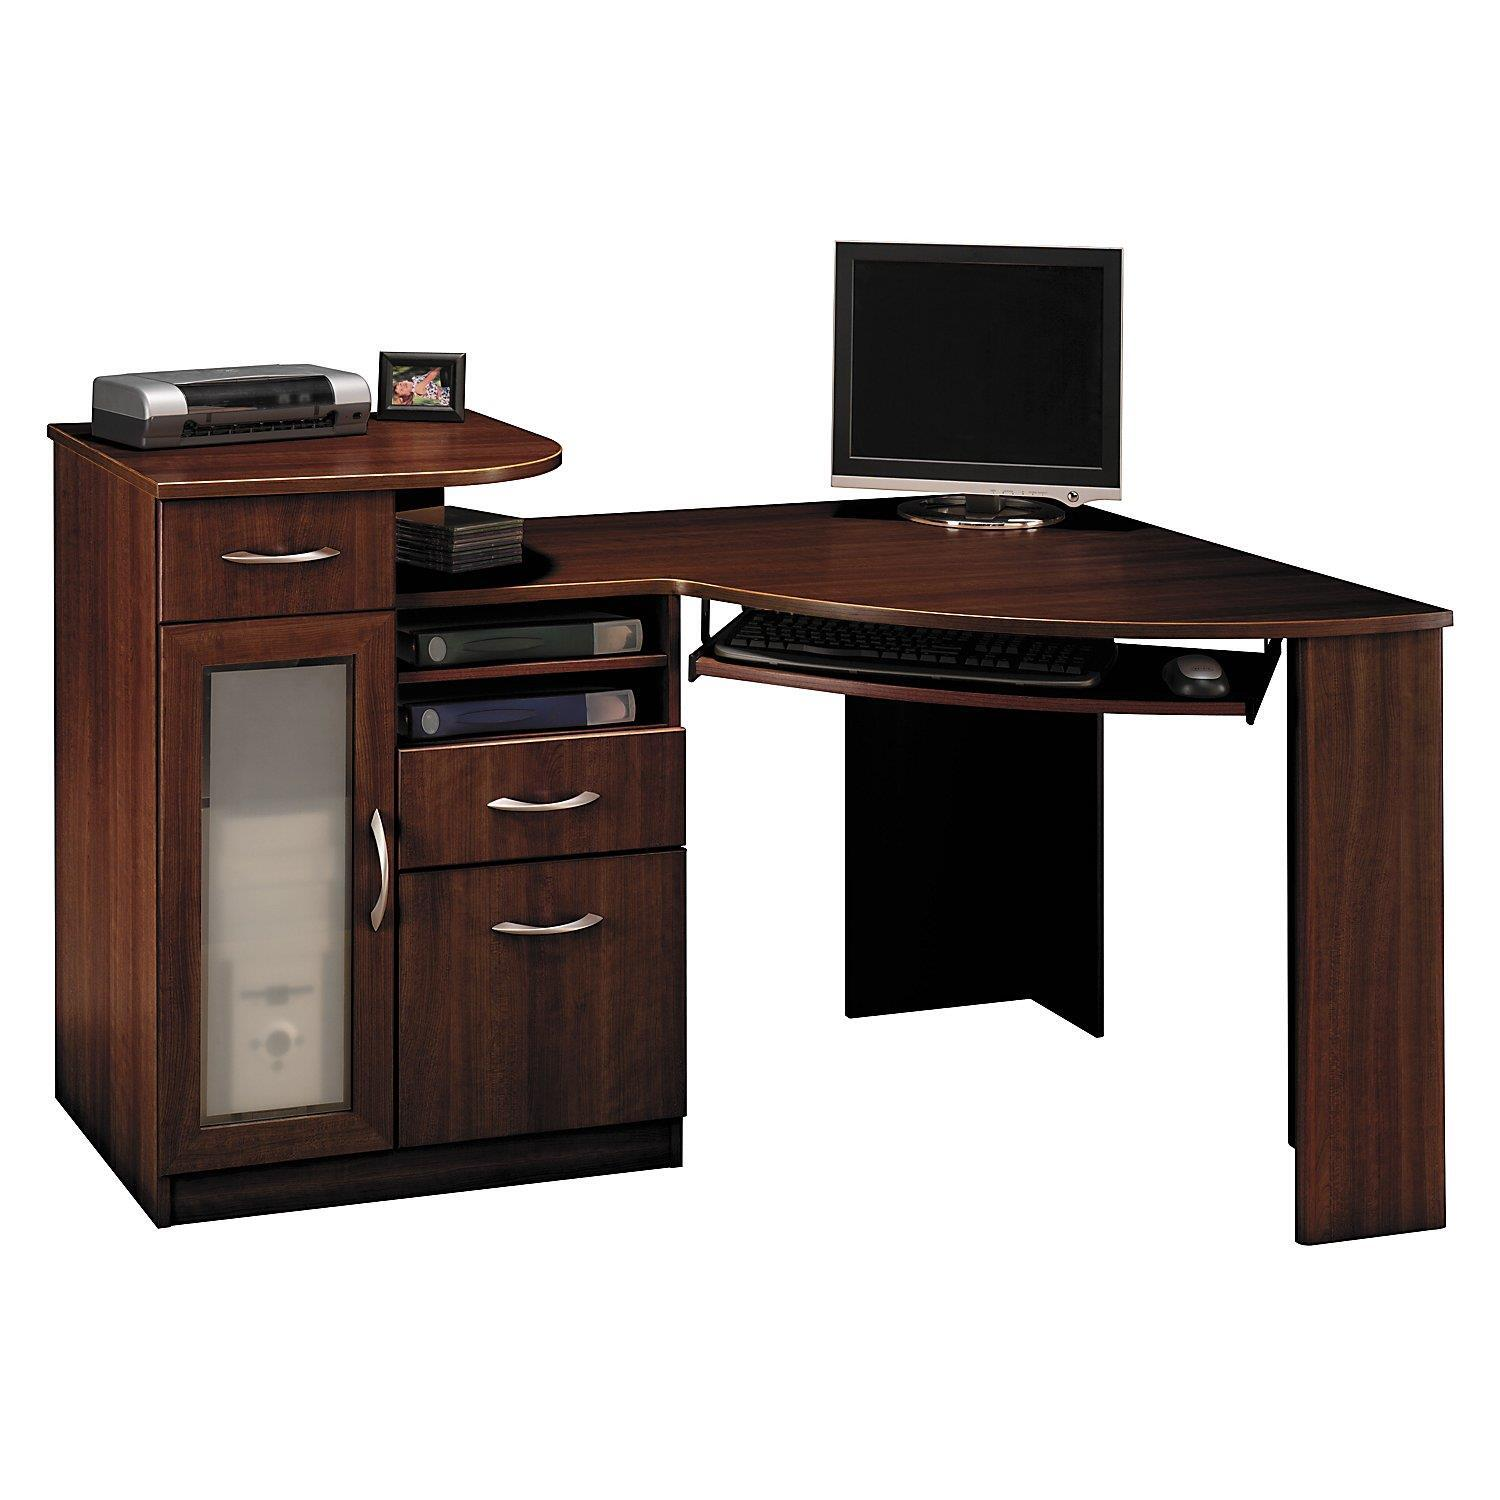 Bush Furniture Corner Desk by OJ Commerce HM66115-03 - $254.96